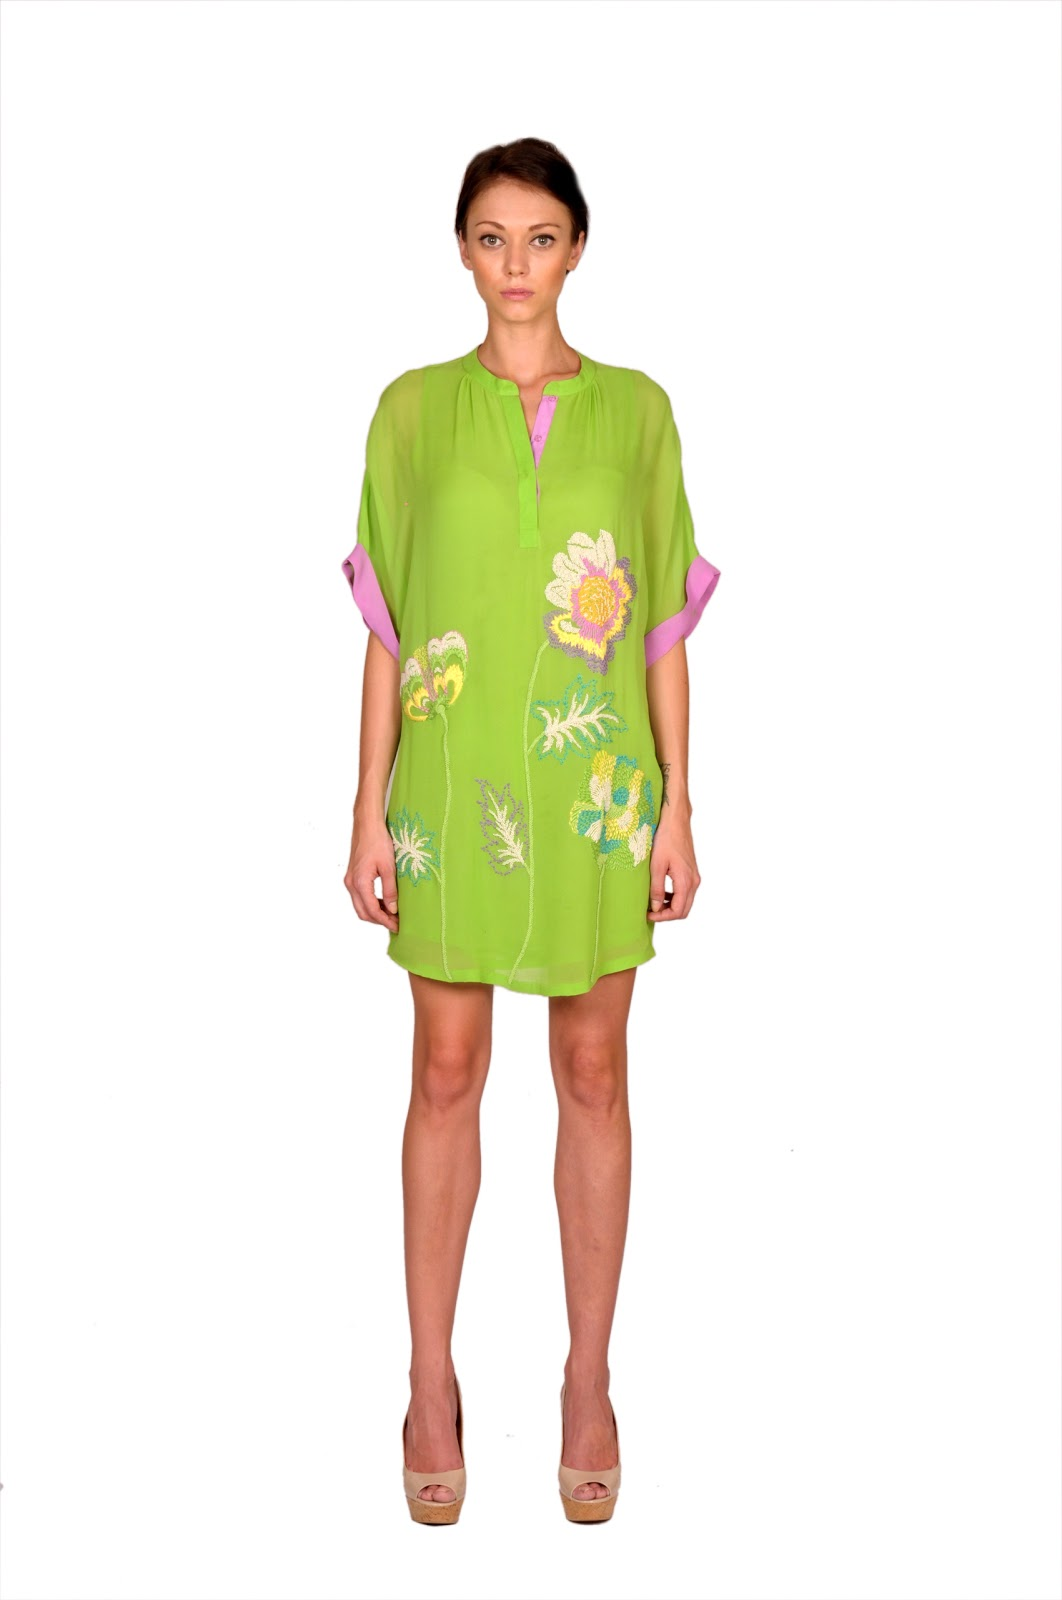 0b60371c02f Ranna Gill has sustained a combination of style and substance that makes  all her collections so stunning. The designer has gravitated toward nature  as her ...